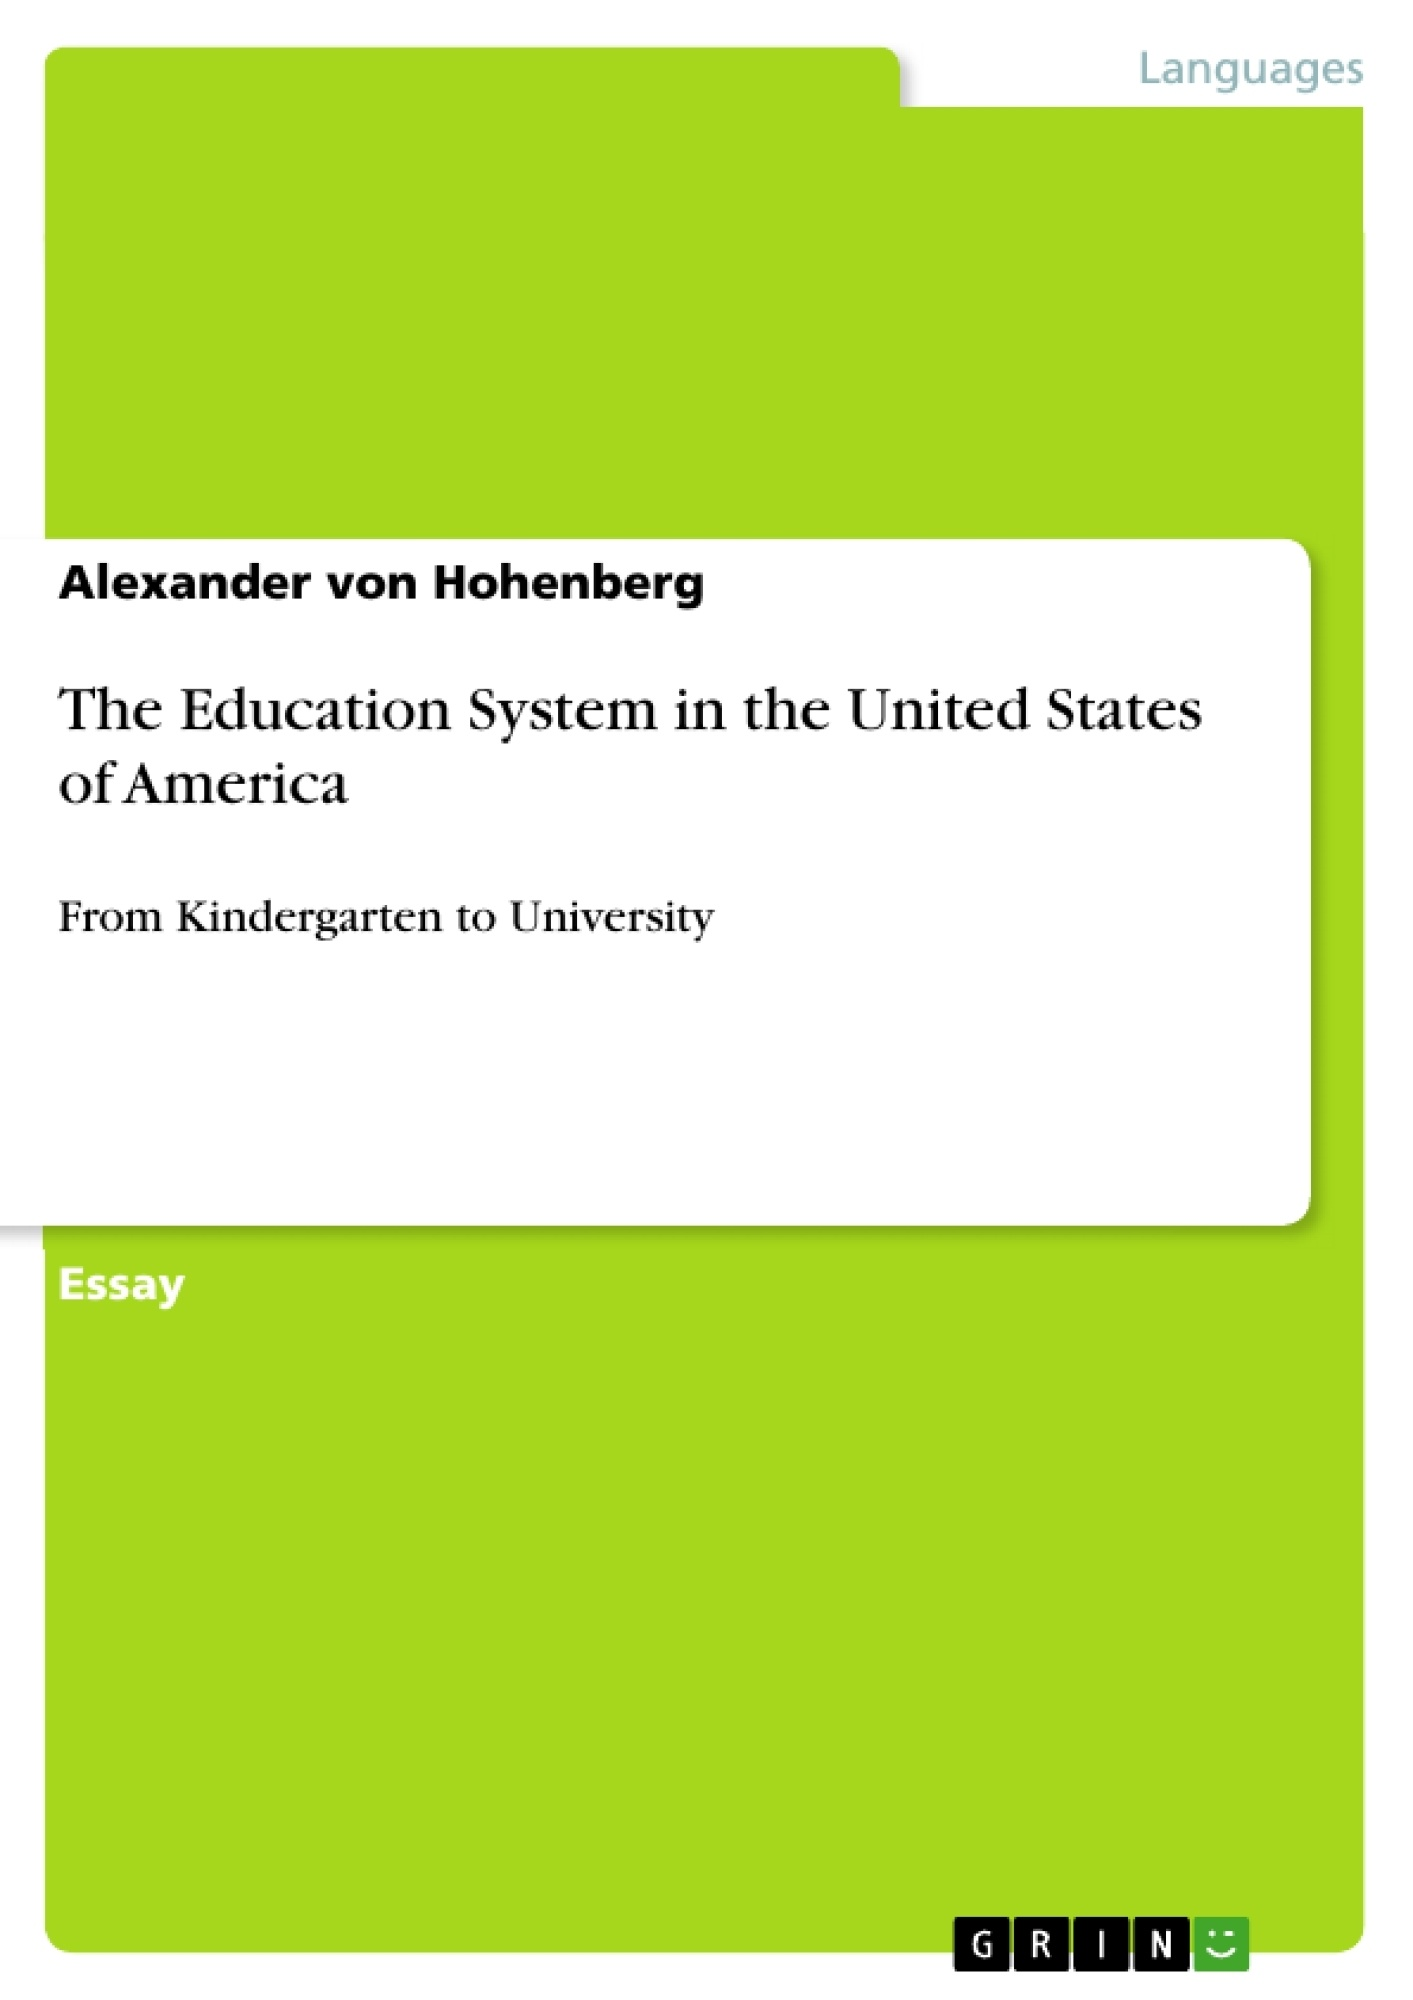 Title: The Education System in the United States of America